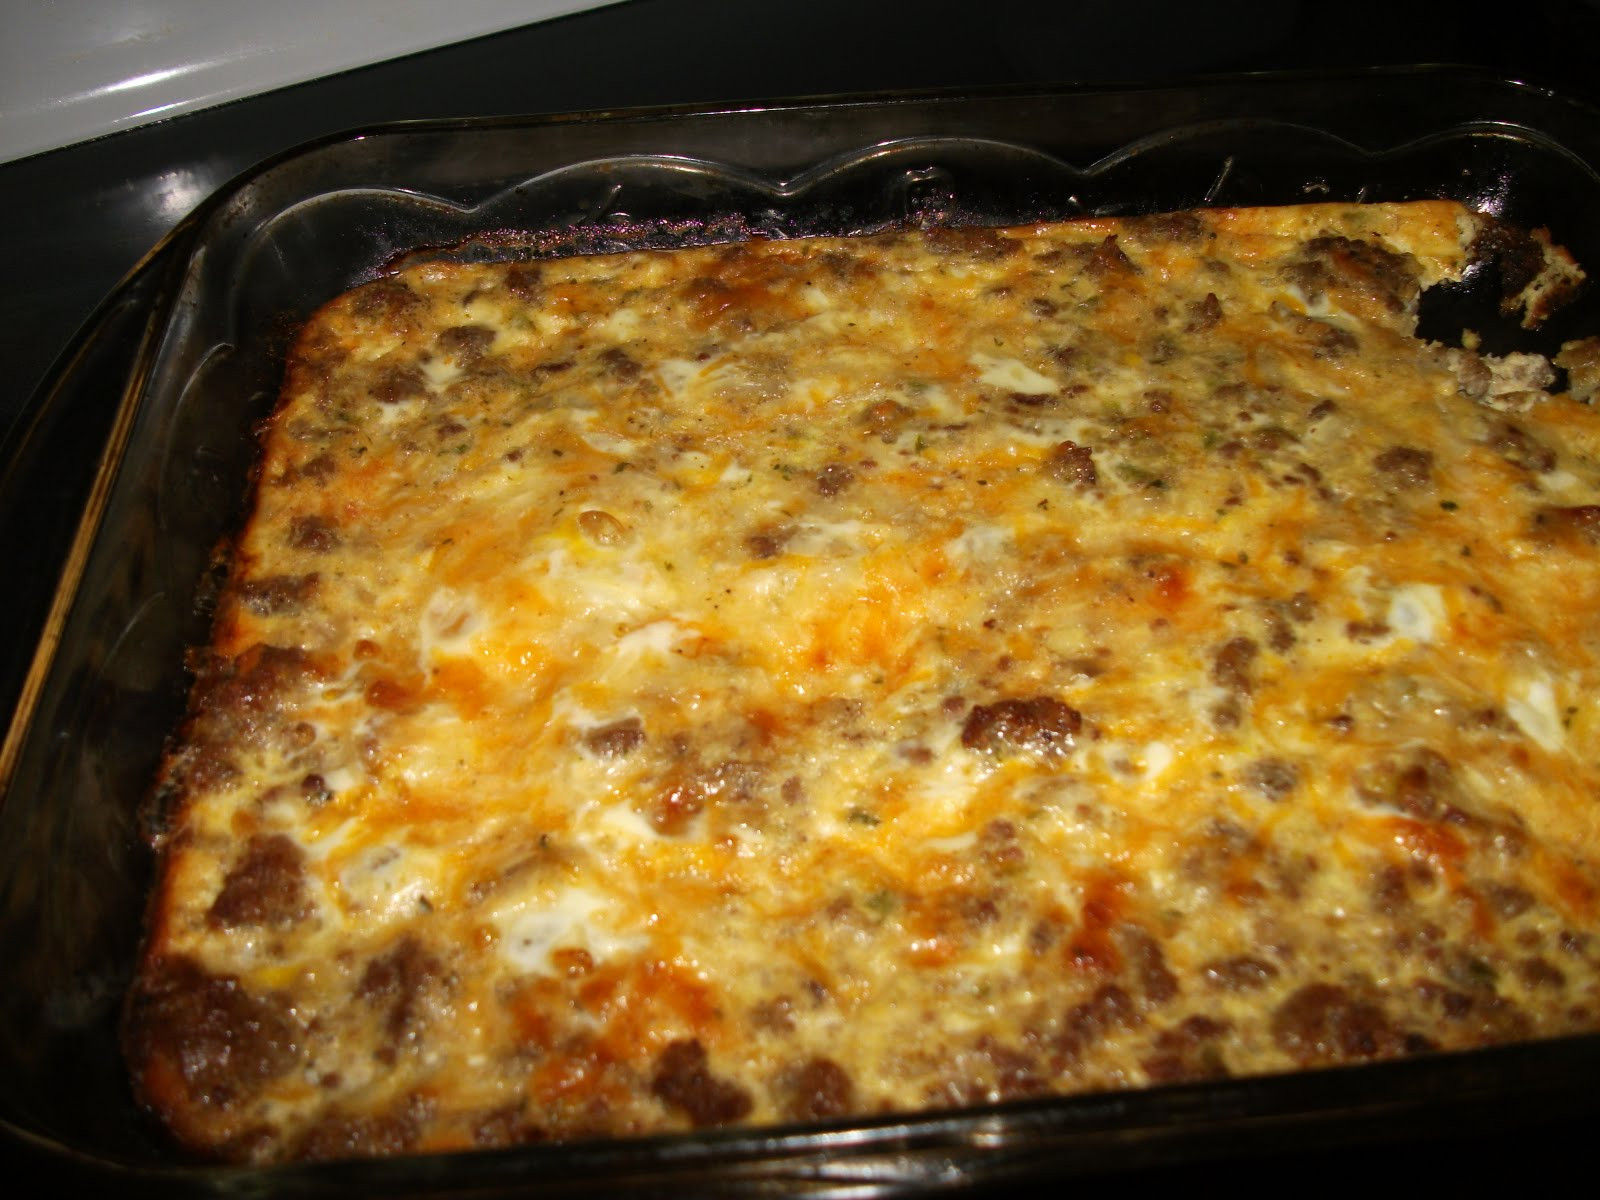 Low Carb Casserole Recipes  Joans Low Carb Living and Recipes Breakfast Casserole low